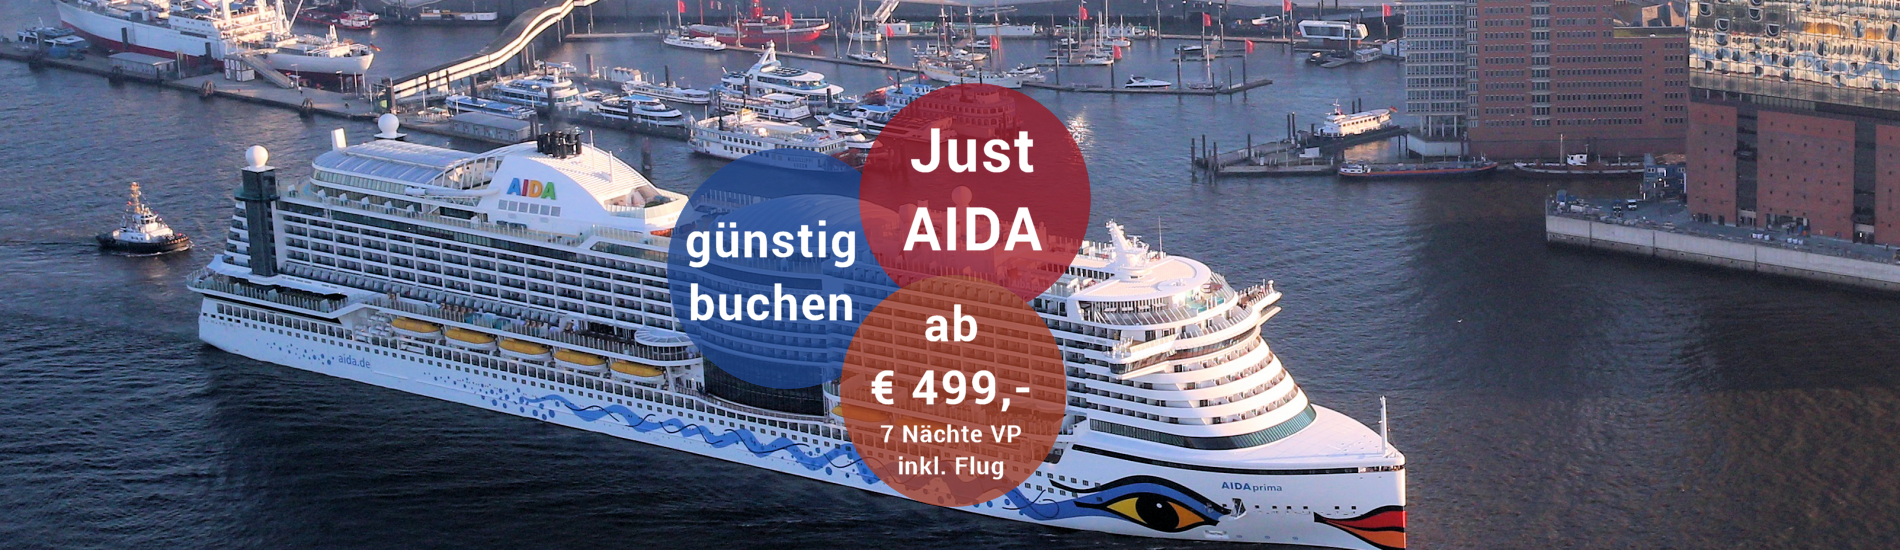 Fotos: Aida Cruises